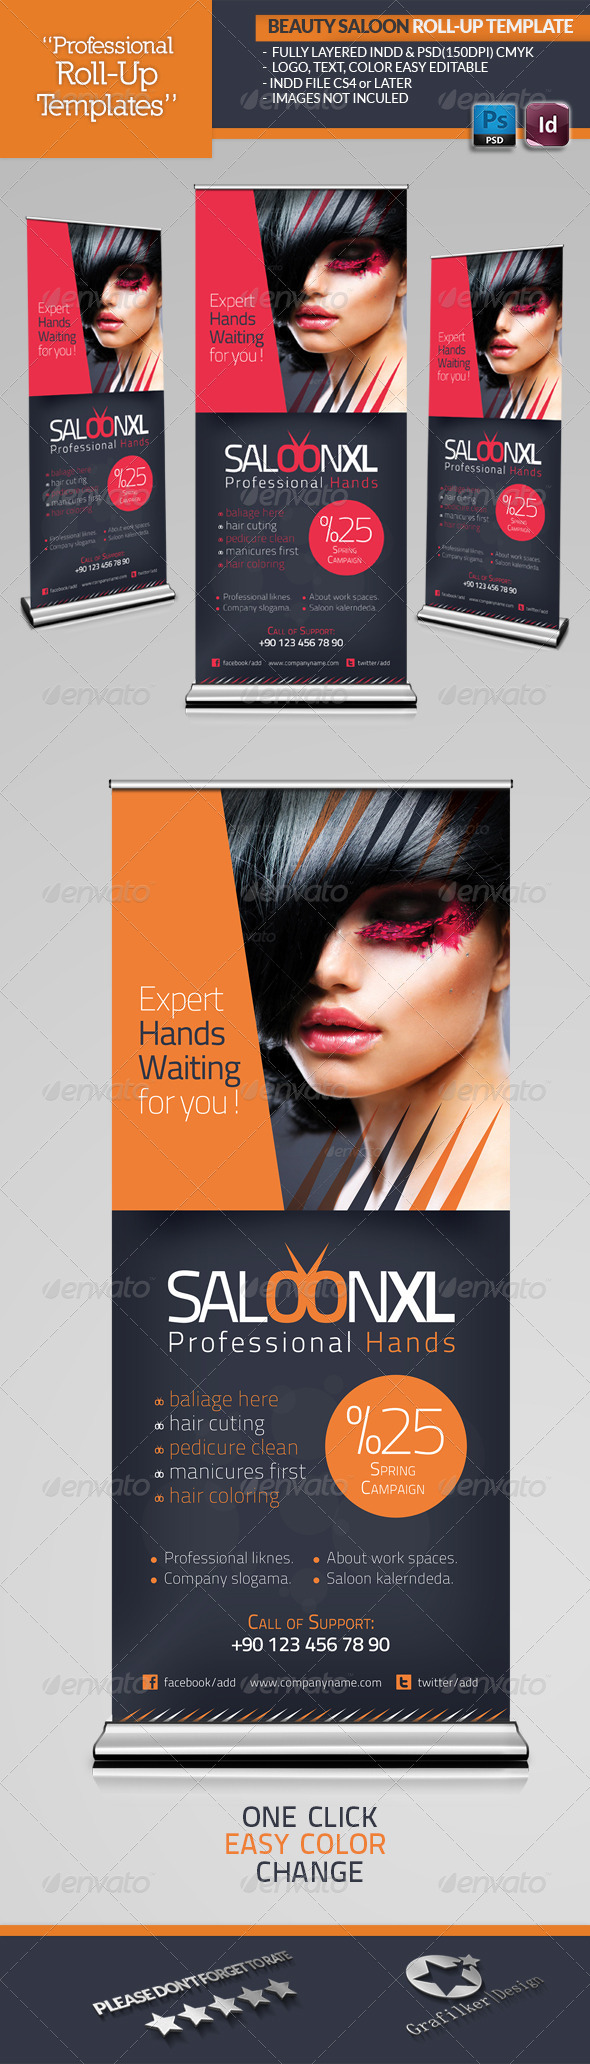 GraphicRiver Beauty Saloon Roll-Up Template 4553391